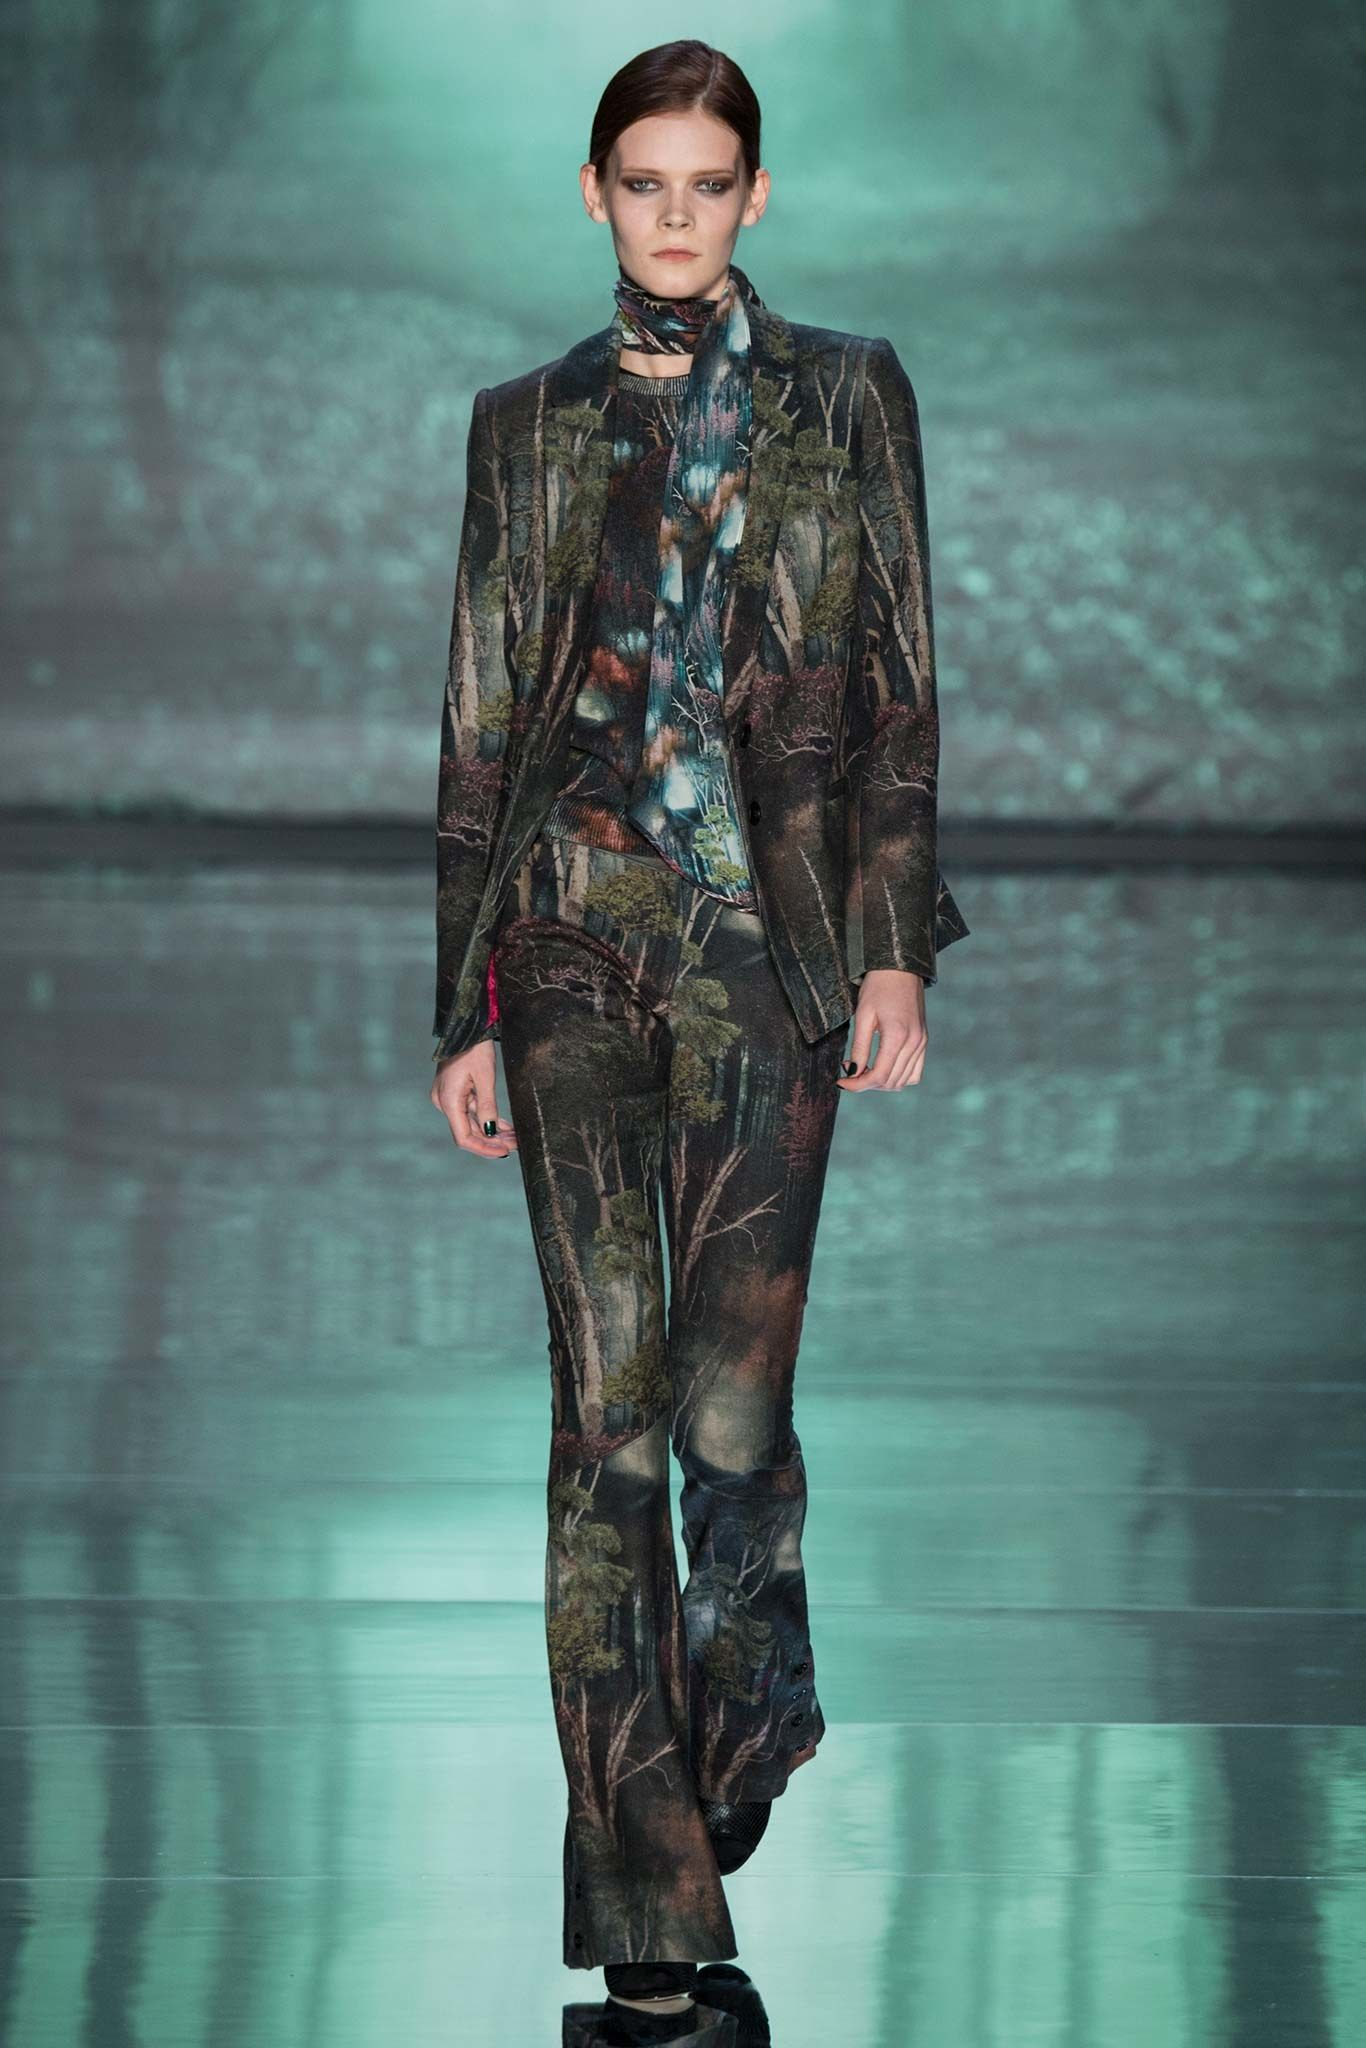 Nicole Miller Fall 2015 Ready-to-Wear Collection Photos - Vogue